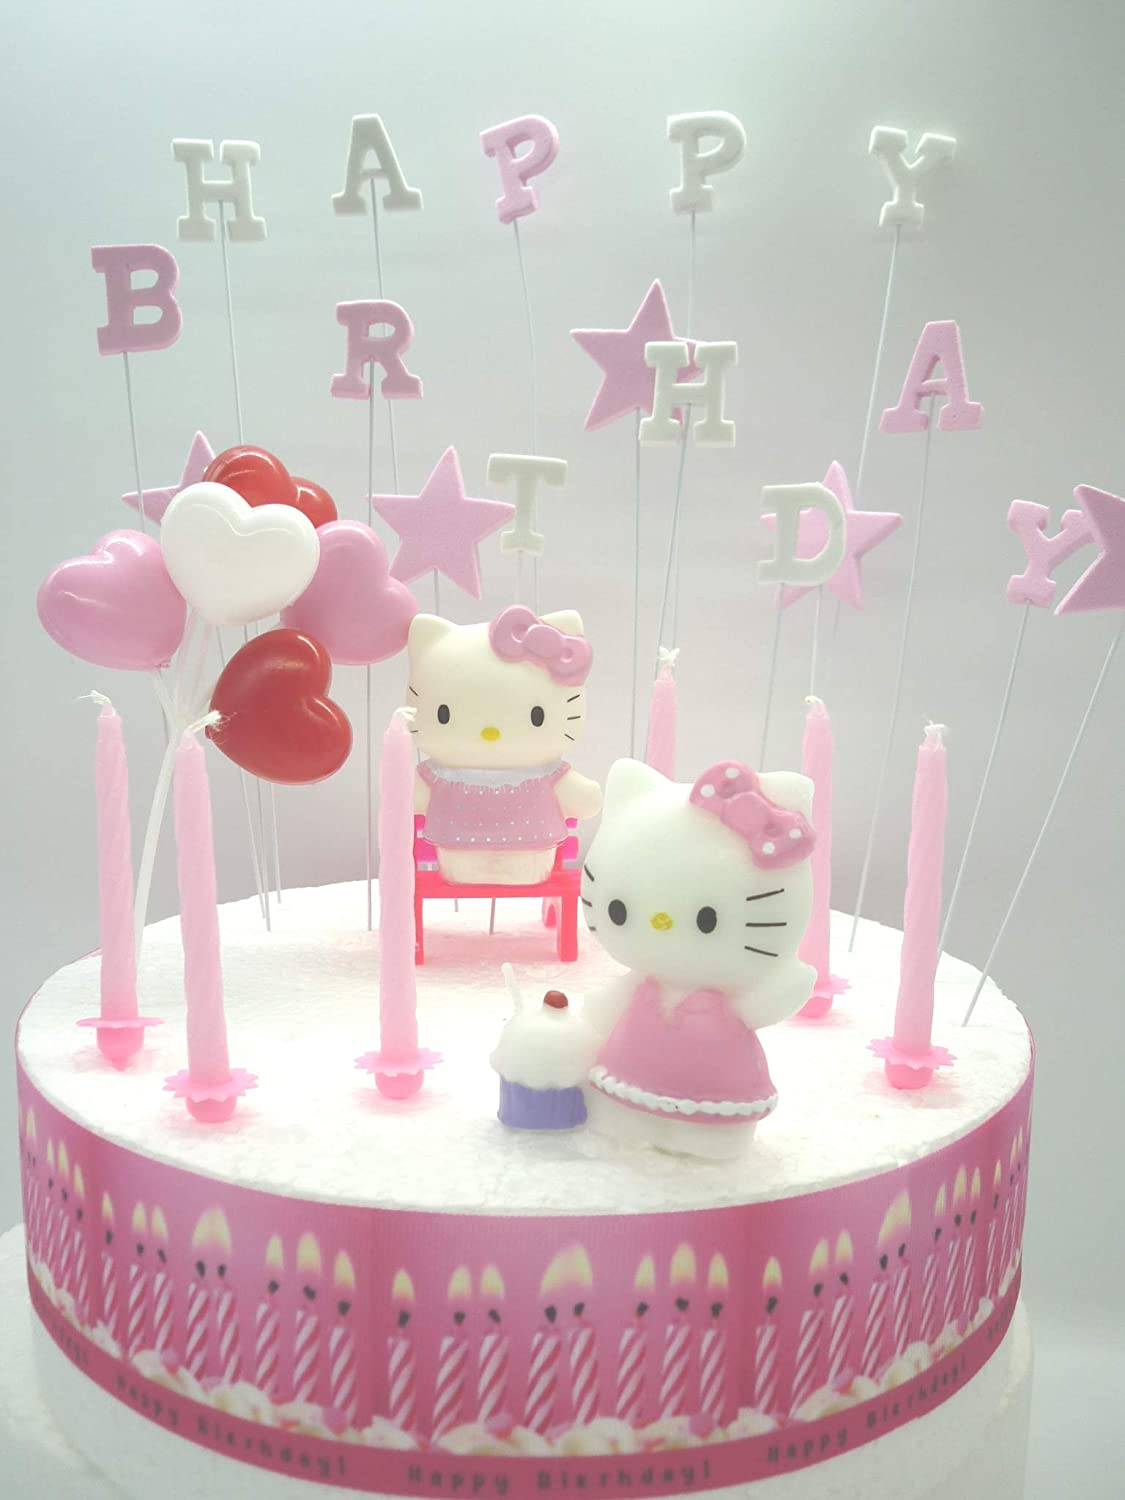 Fine Hello Kitty Birthday Cake Decoration Set Amazon Co Uk Kitchen Home Personalised Birthday Cards Paralily Jamesorg